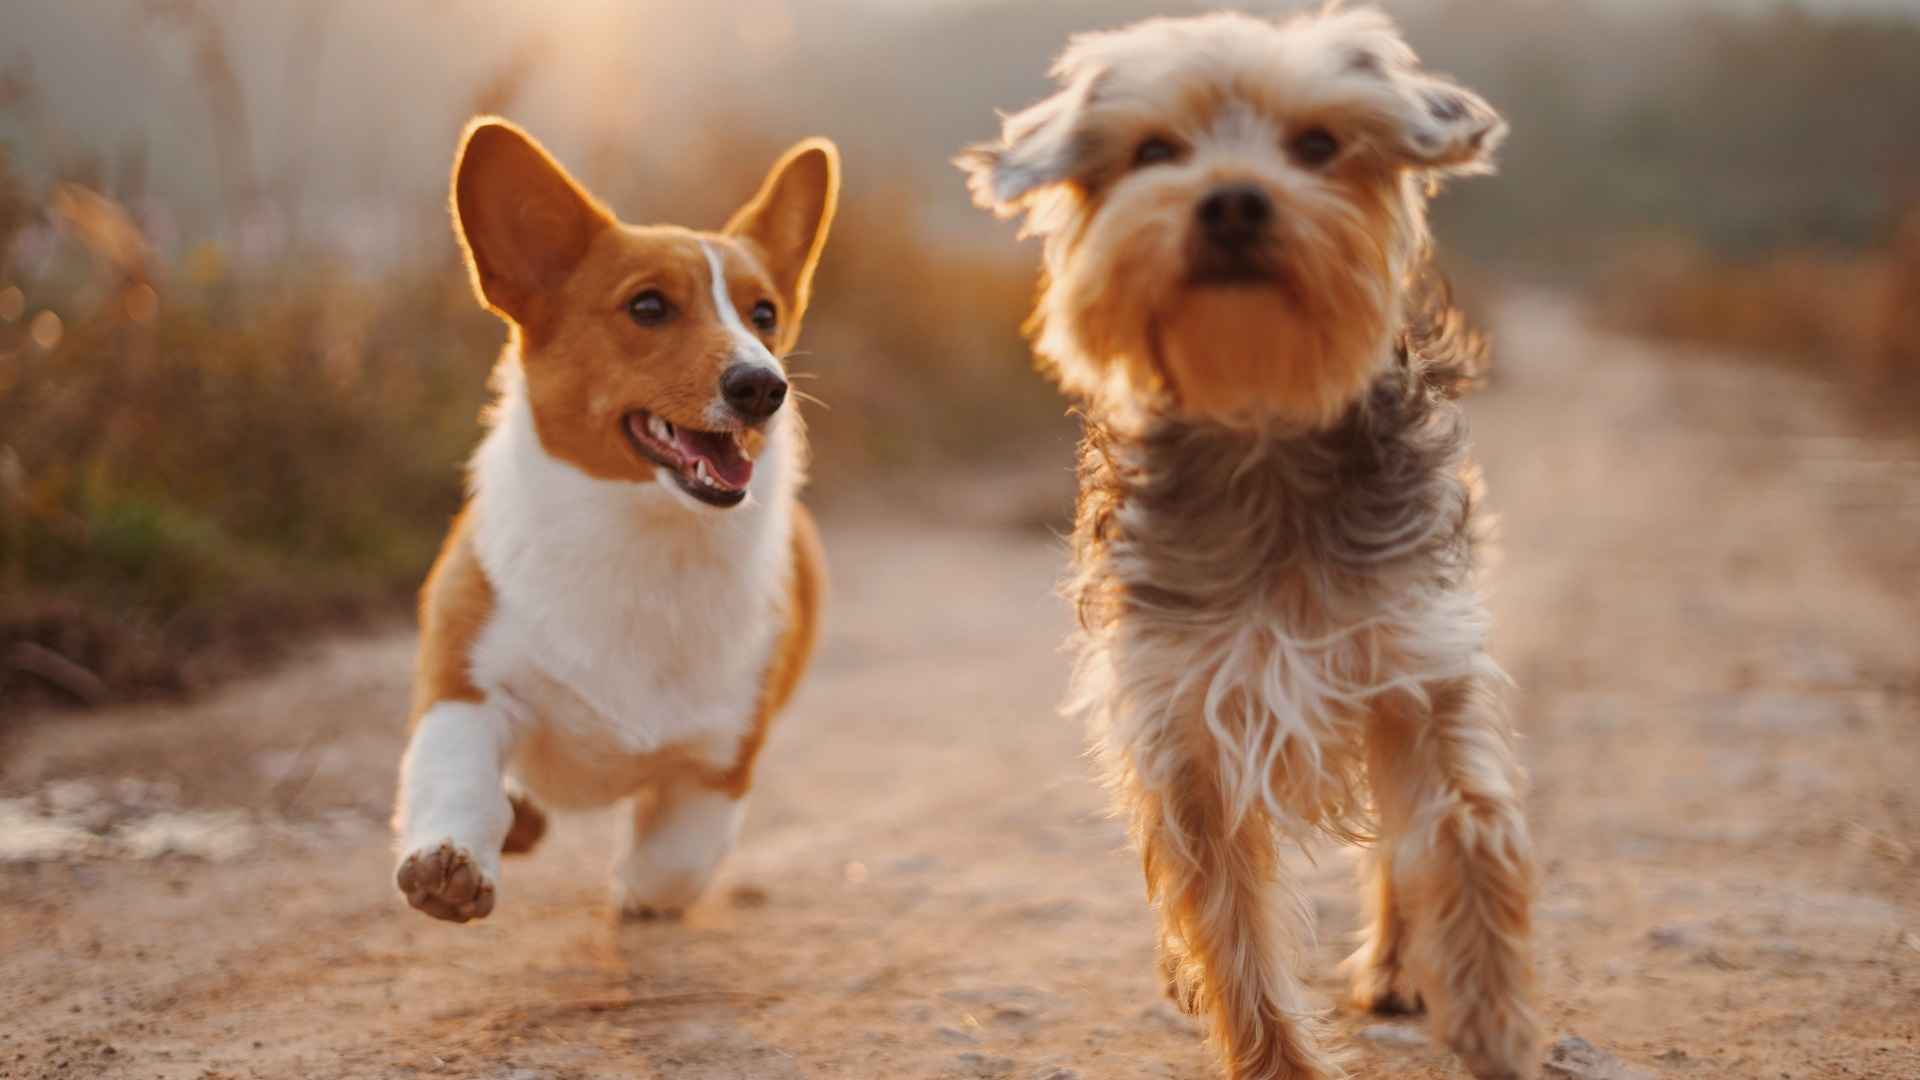 two dogs running down a dirt road to show we can learn from dogs